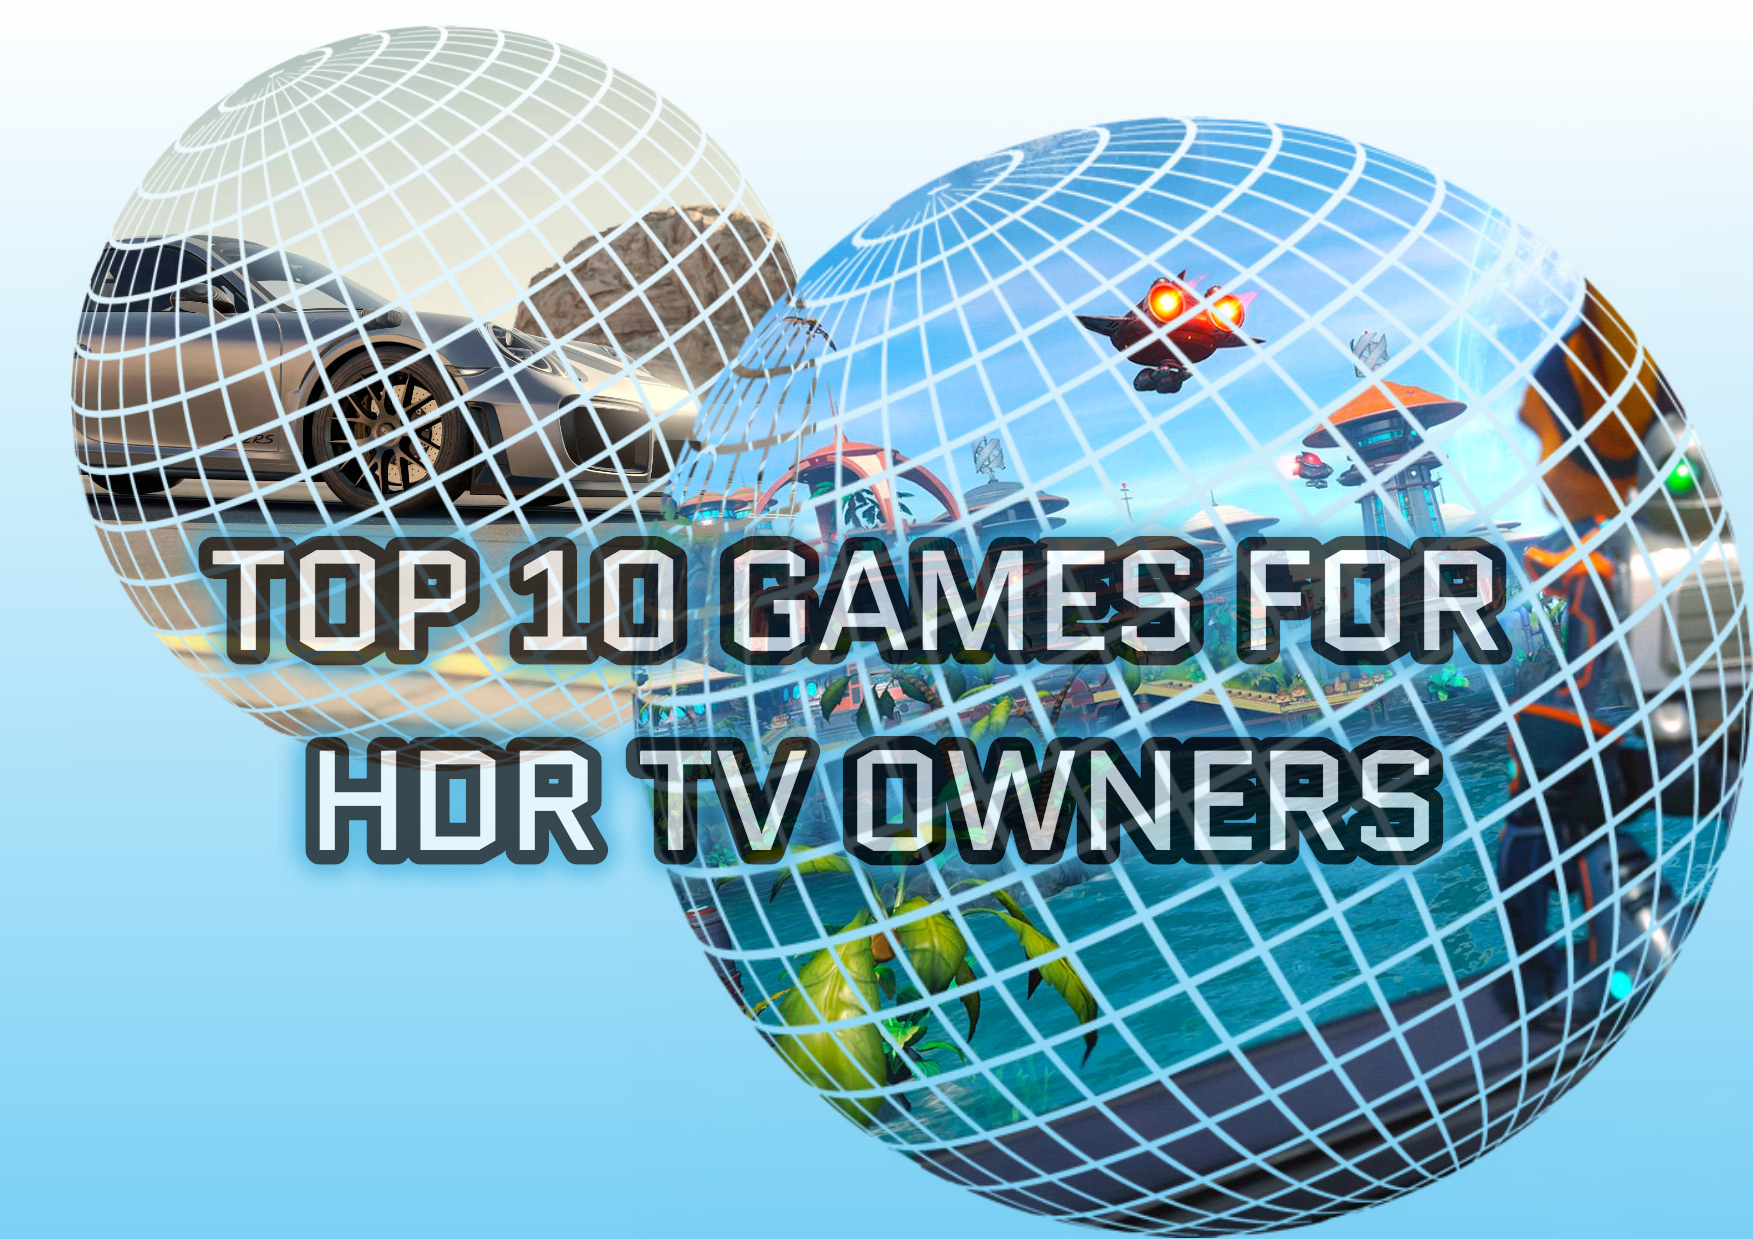 Top 10 Games for HDR TV owners